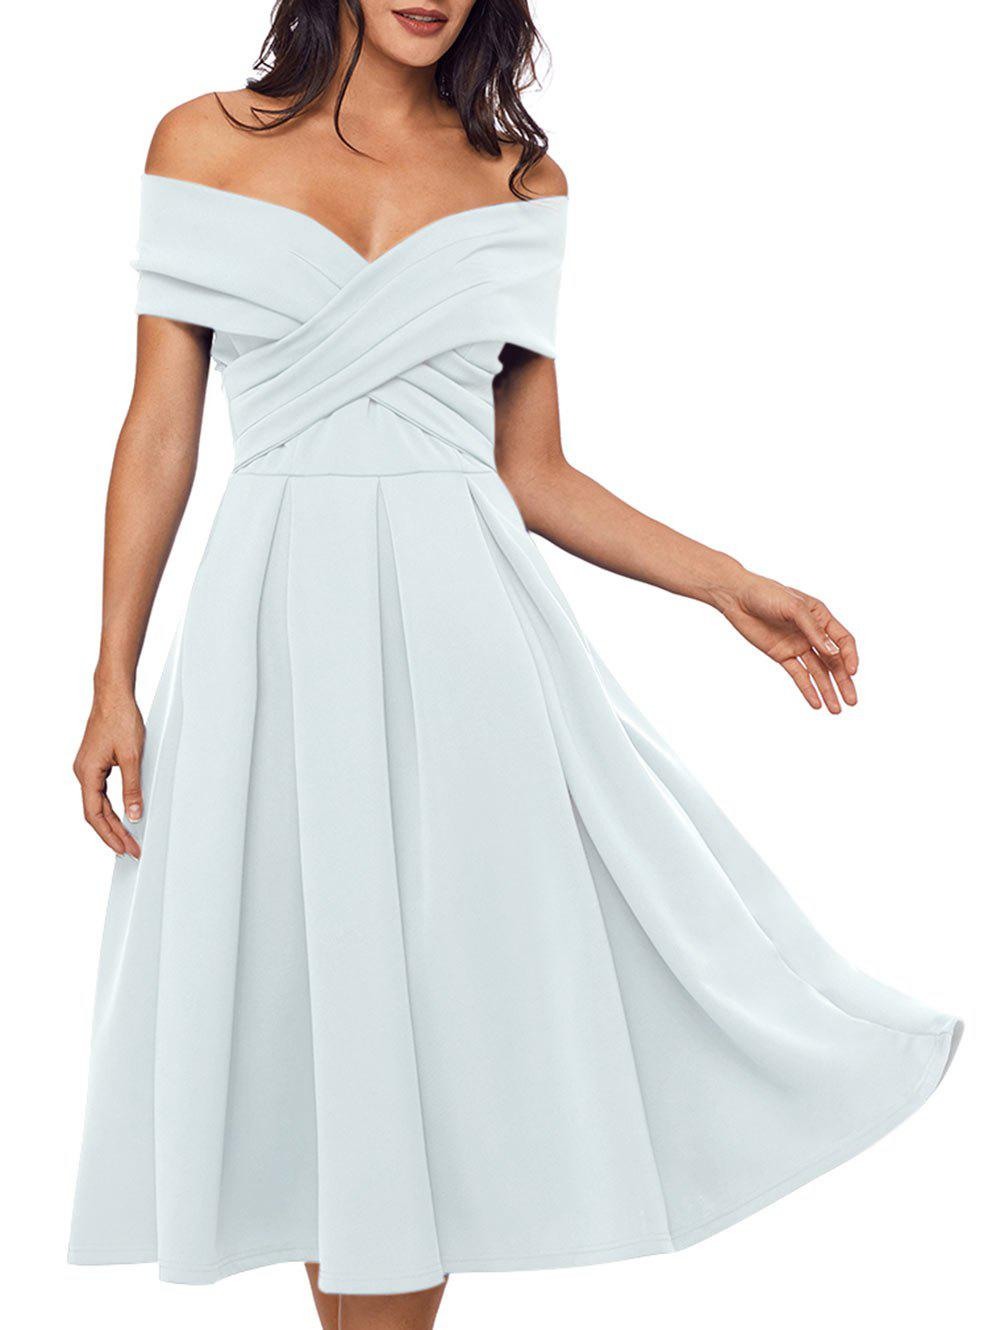 24de9b5ce07 58% OFF  Cross Front Open Shoulder Prom Dress